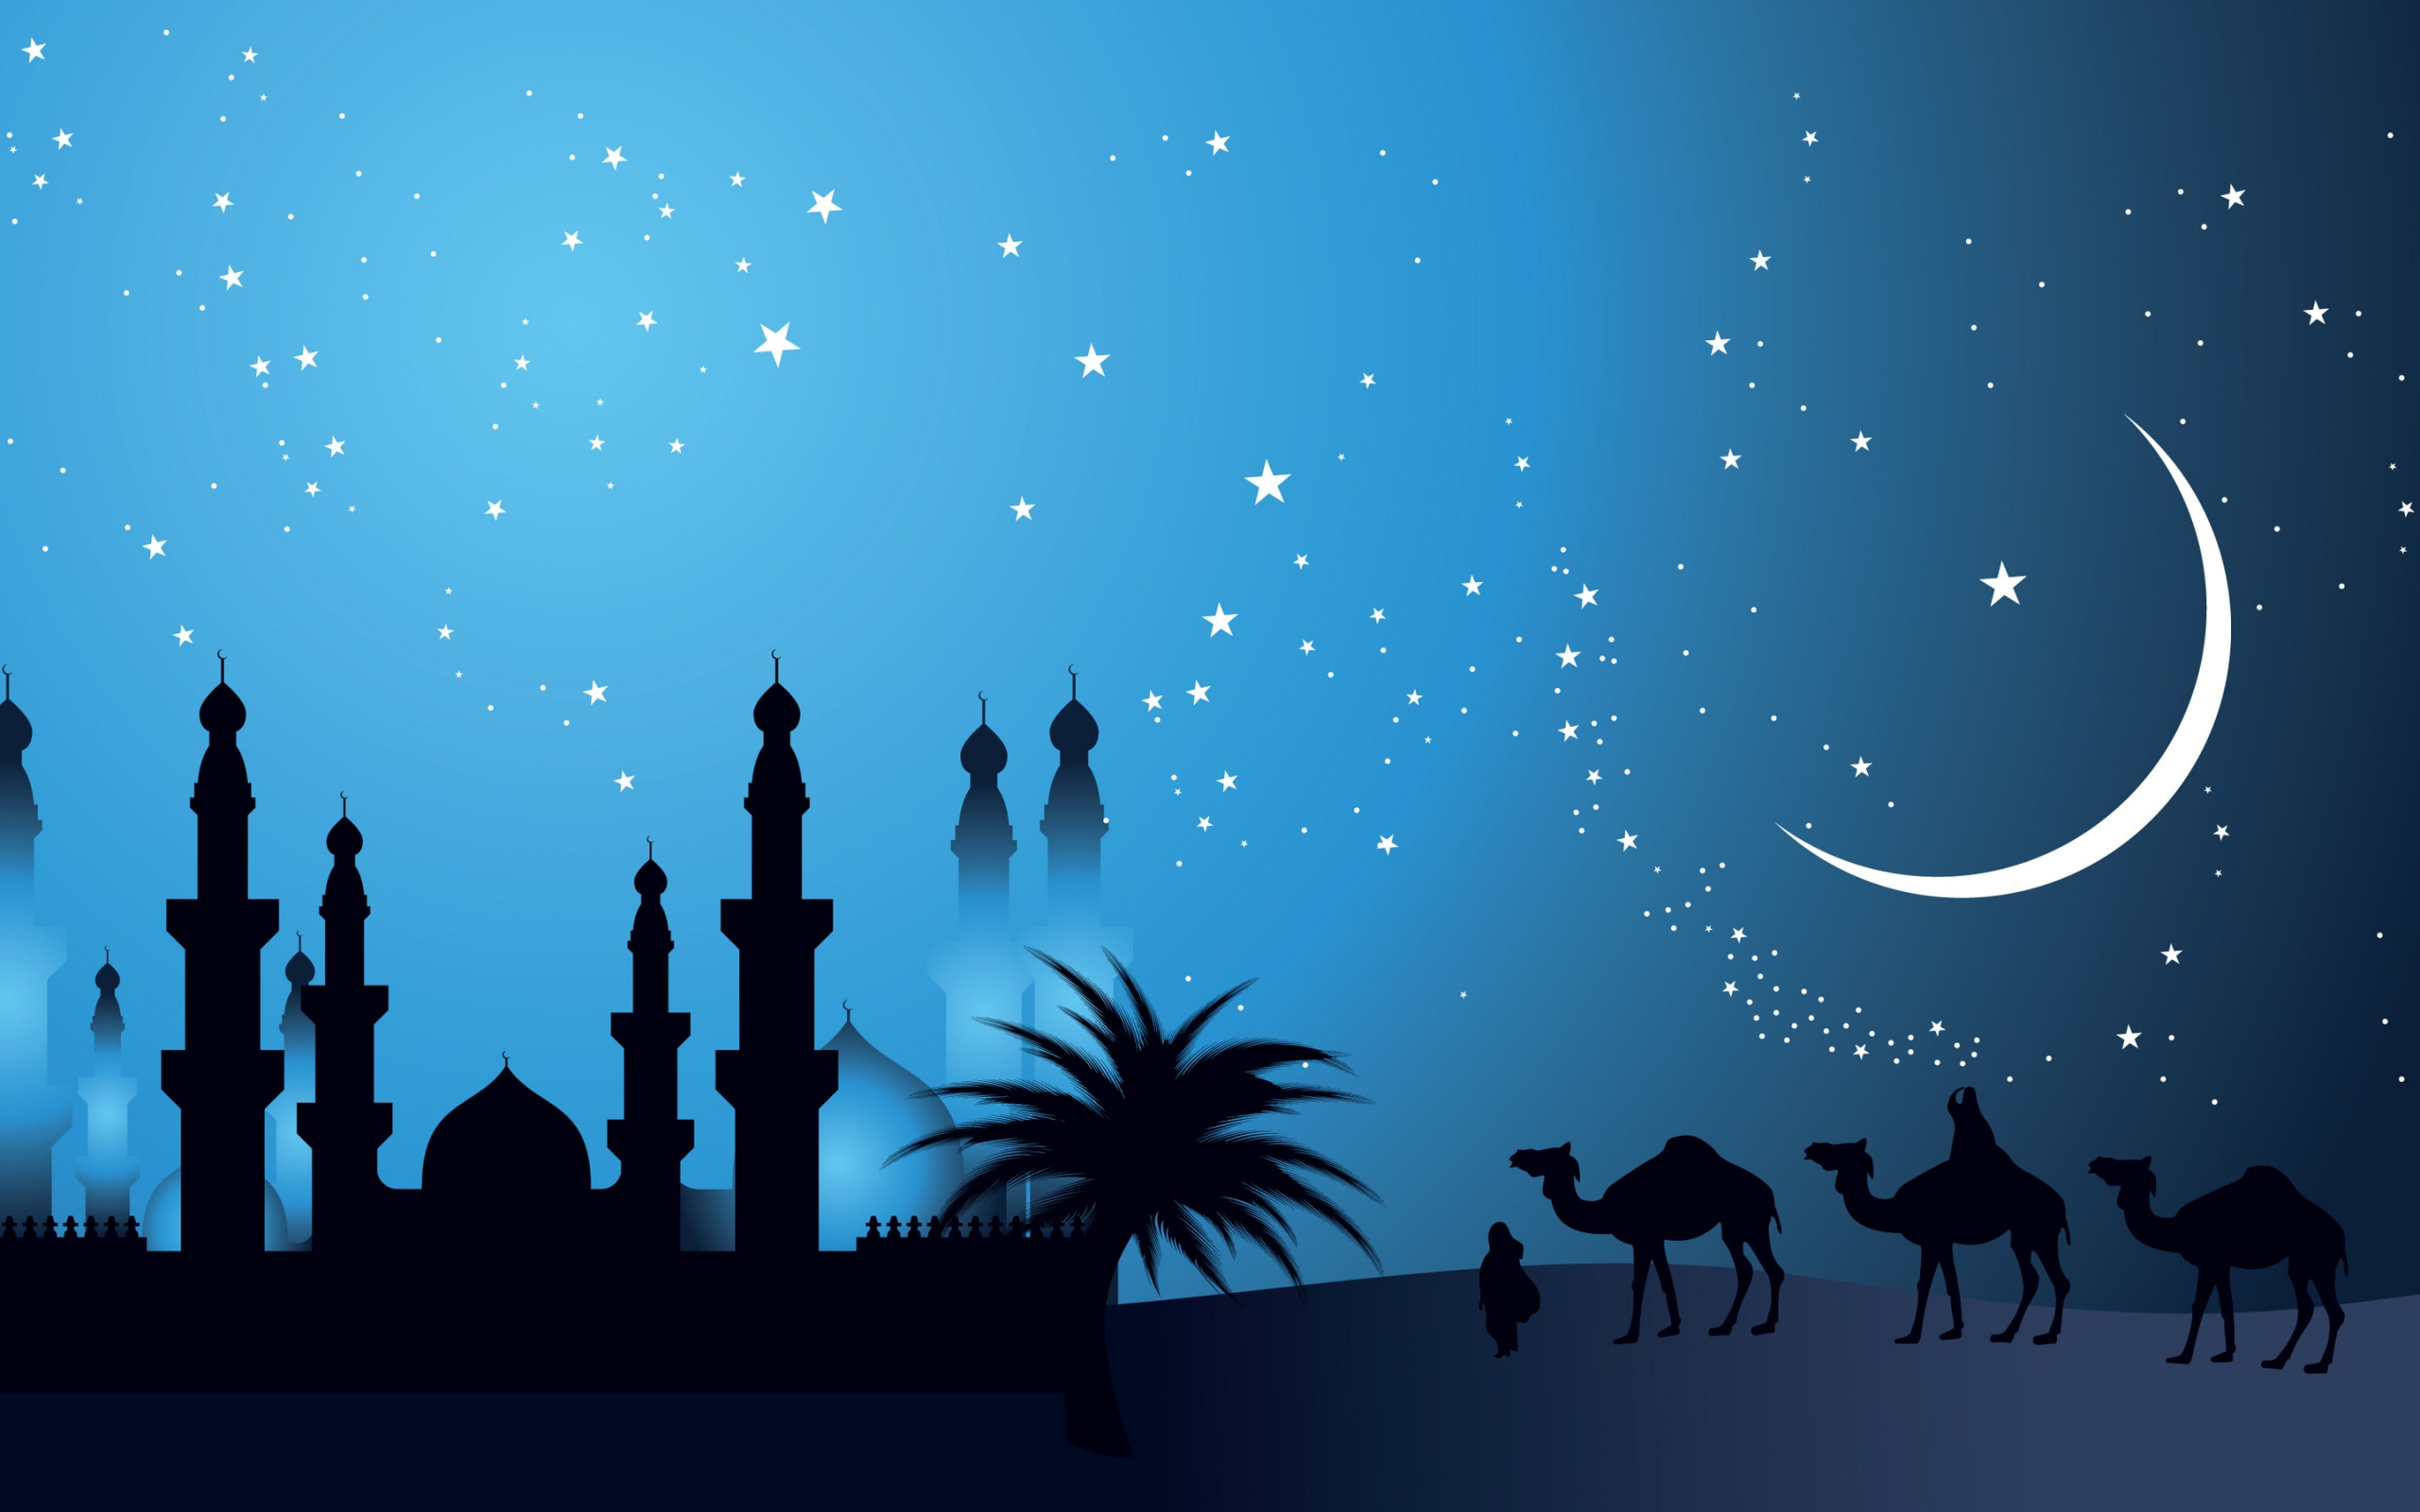 Wallpaper For Islamic Images